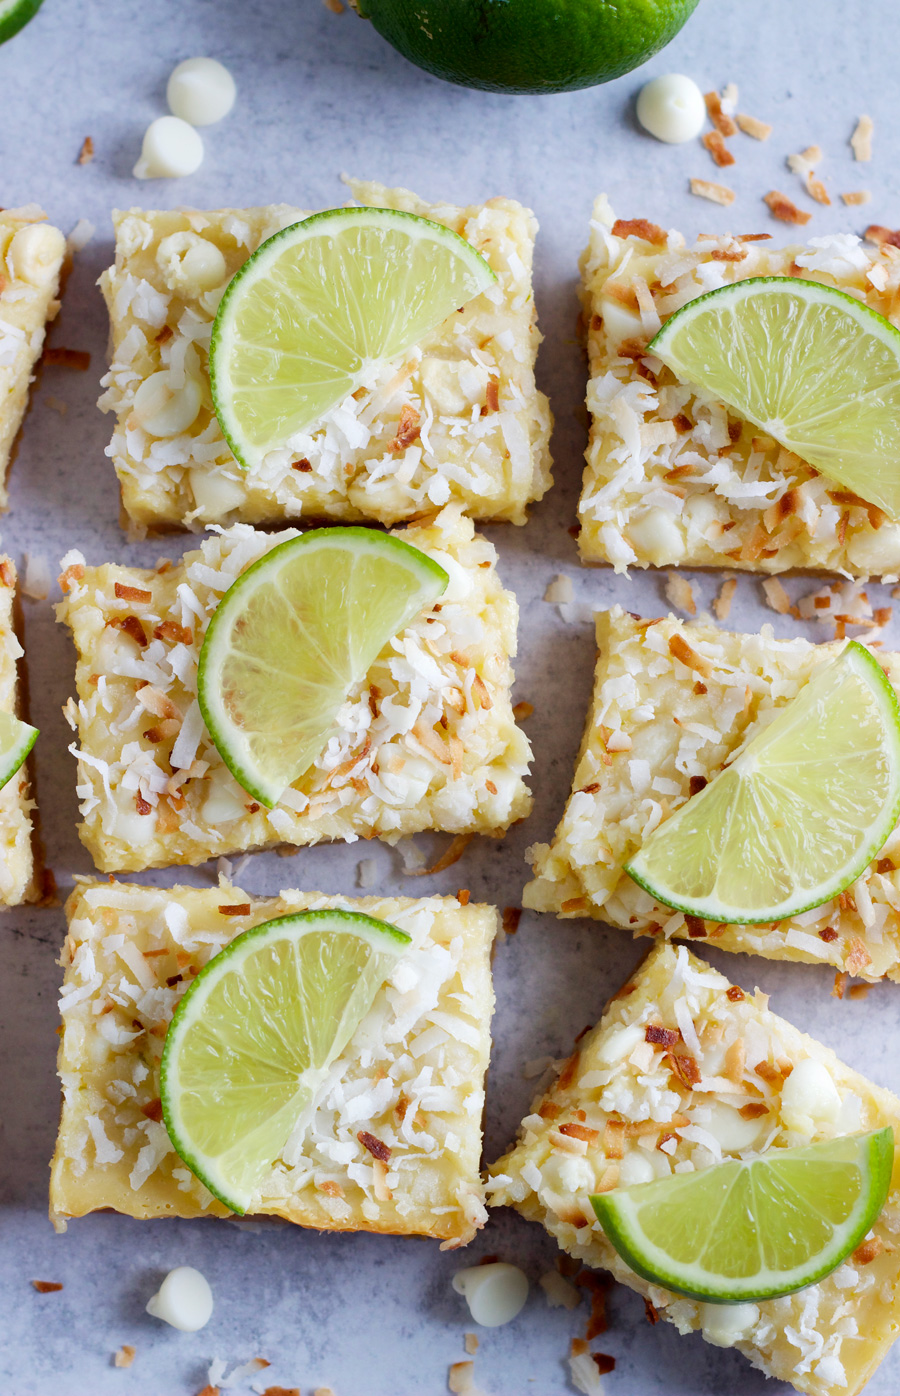 White chocolate coconut lime bars with a thin slice of lime on top of each and laying on a gray background